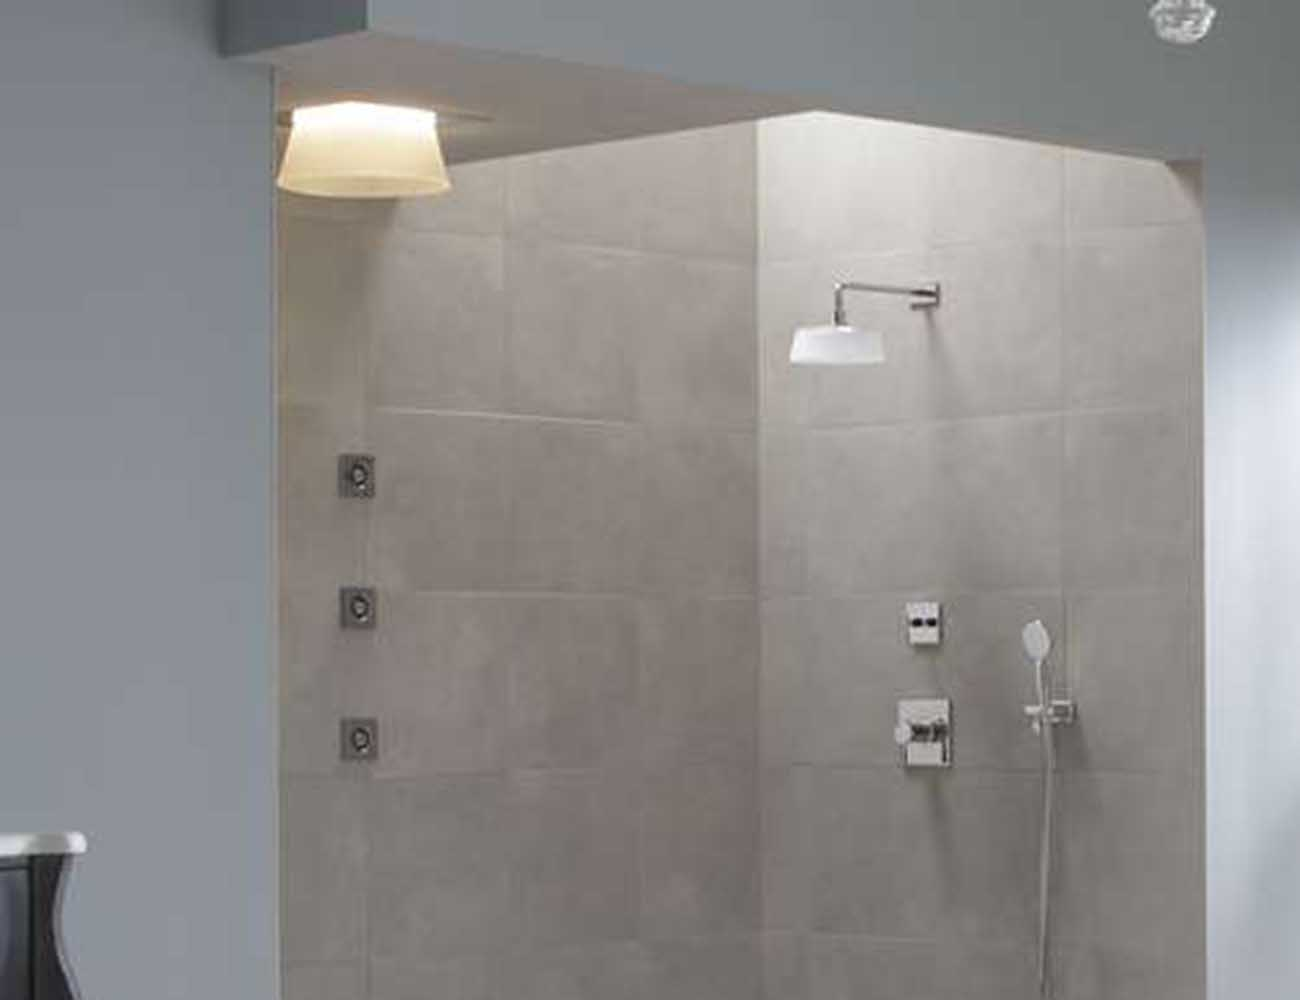 LED Ceiling Mounted Shower by Toto